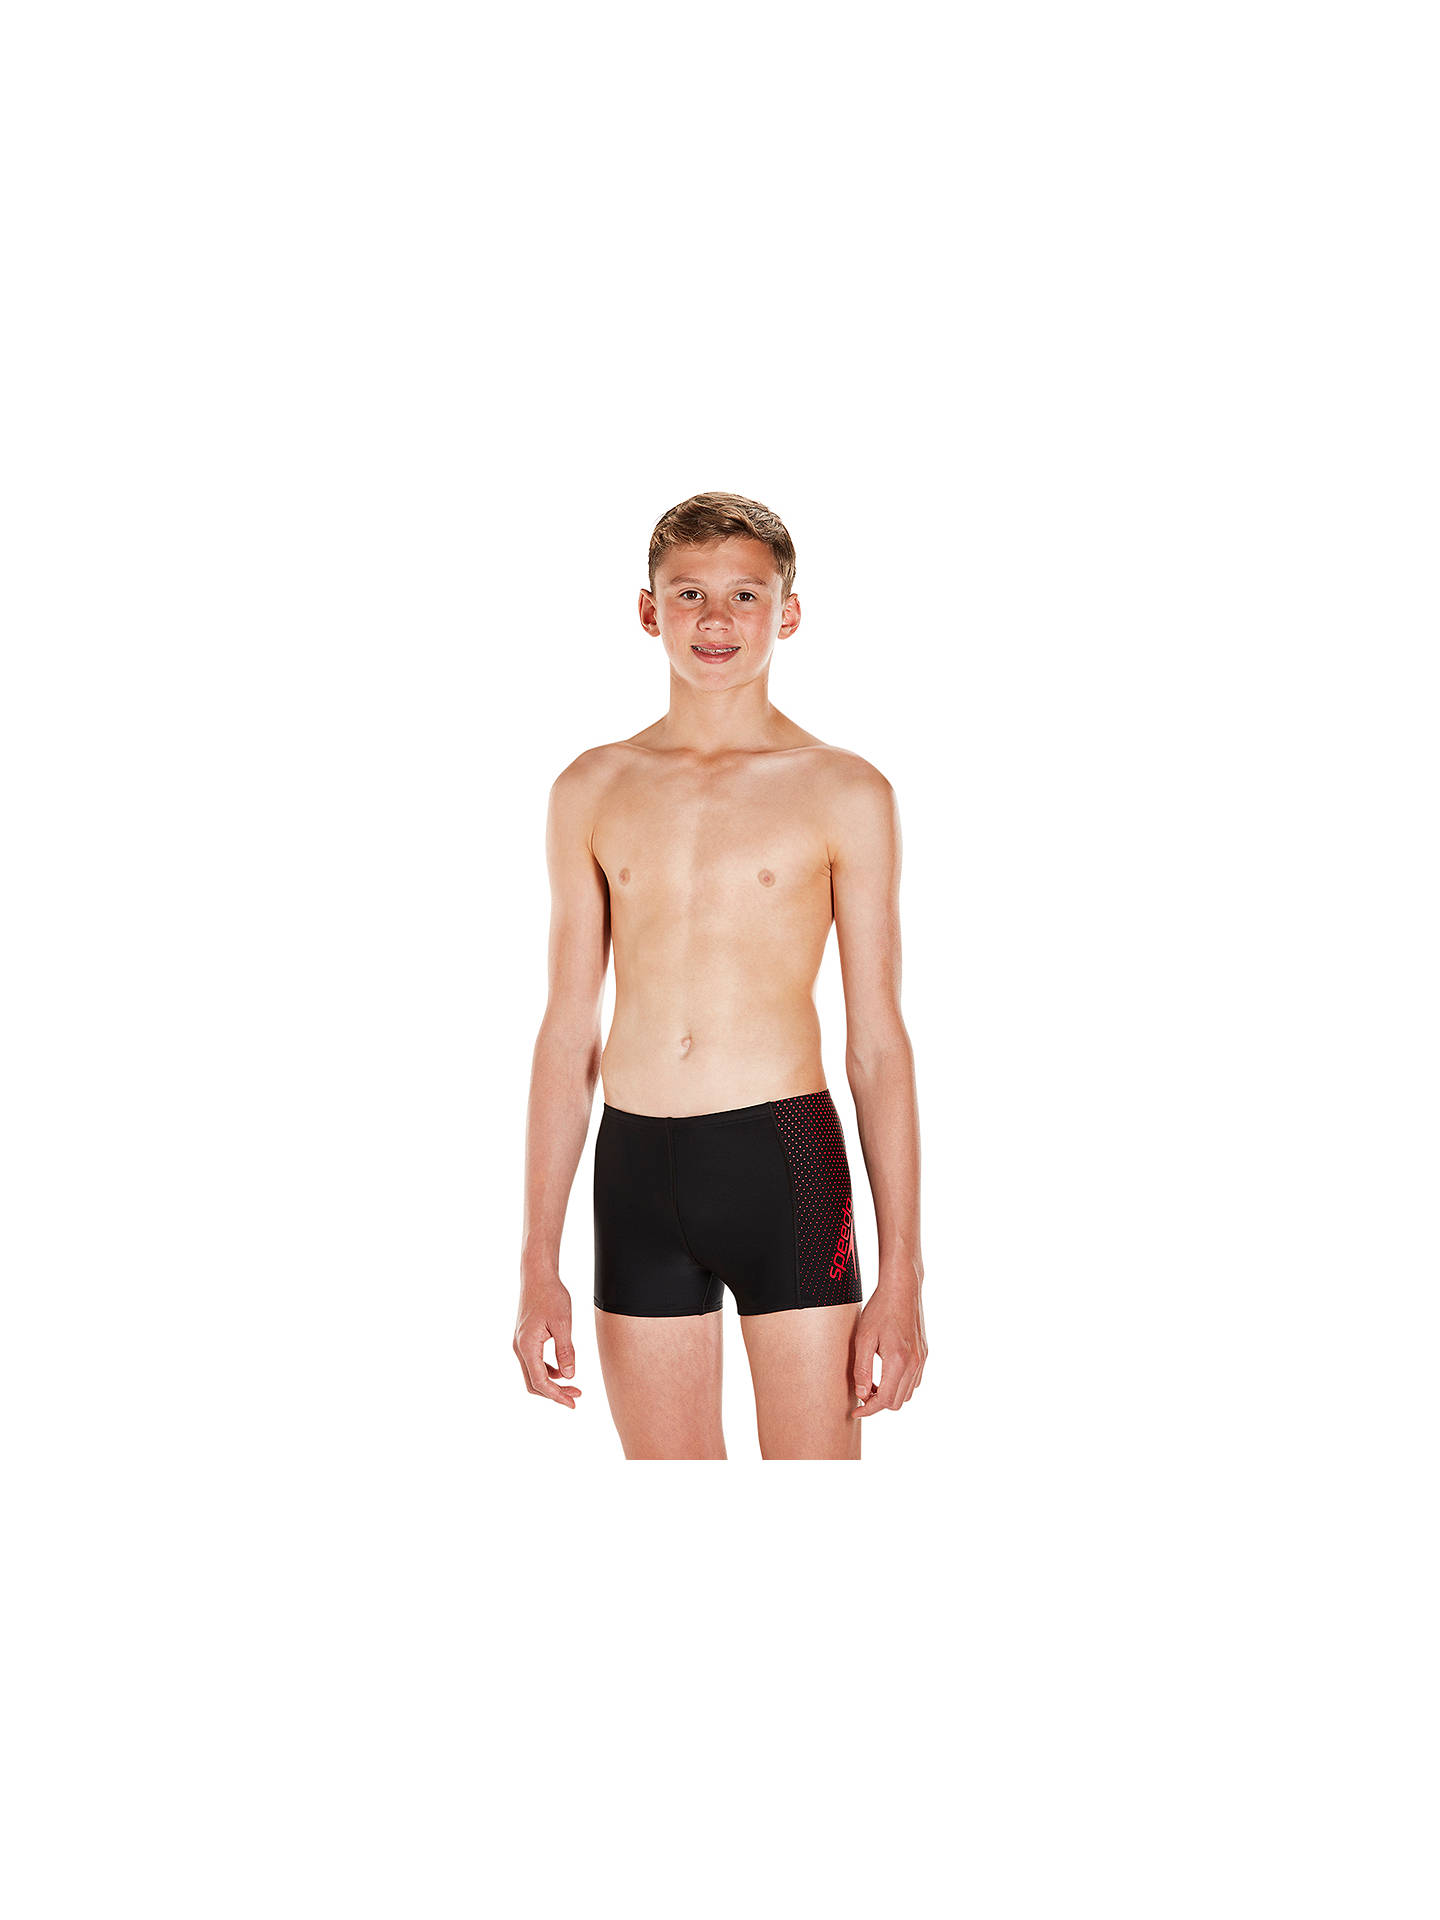 "Buy Speedo Boys' Gala Aquashorts, Black/Red, Waist 22"" Online at johnlewis.com"